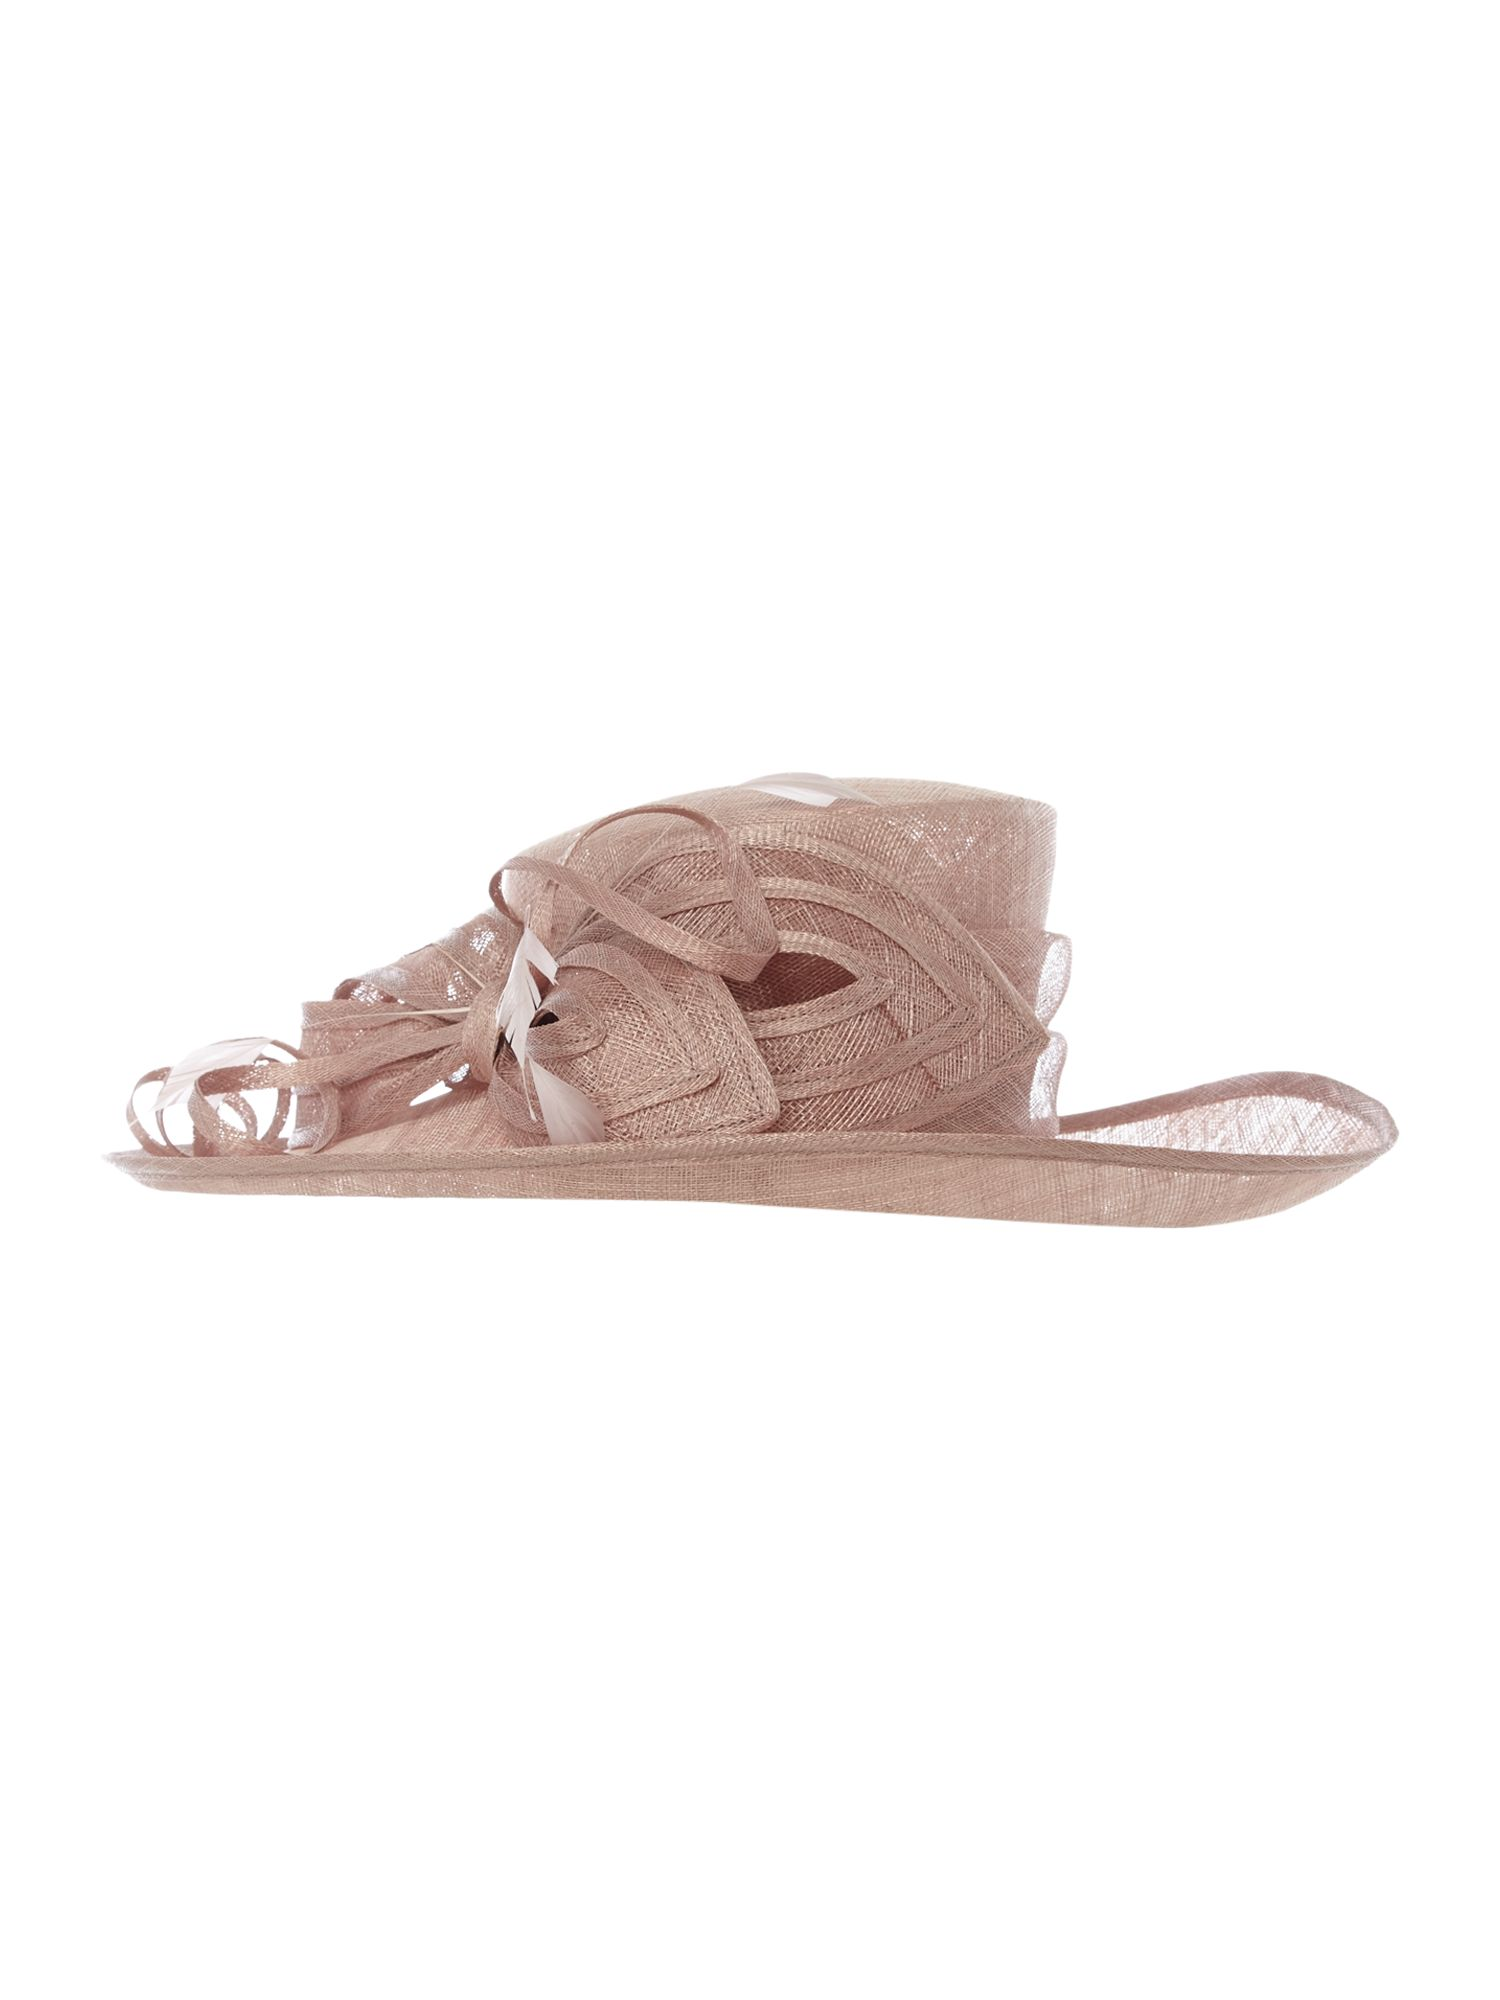 Suzanne Bettley Sinamay hat with coques and bow detail, Rose